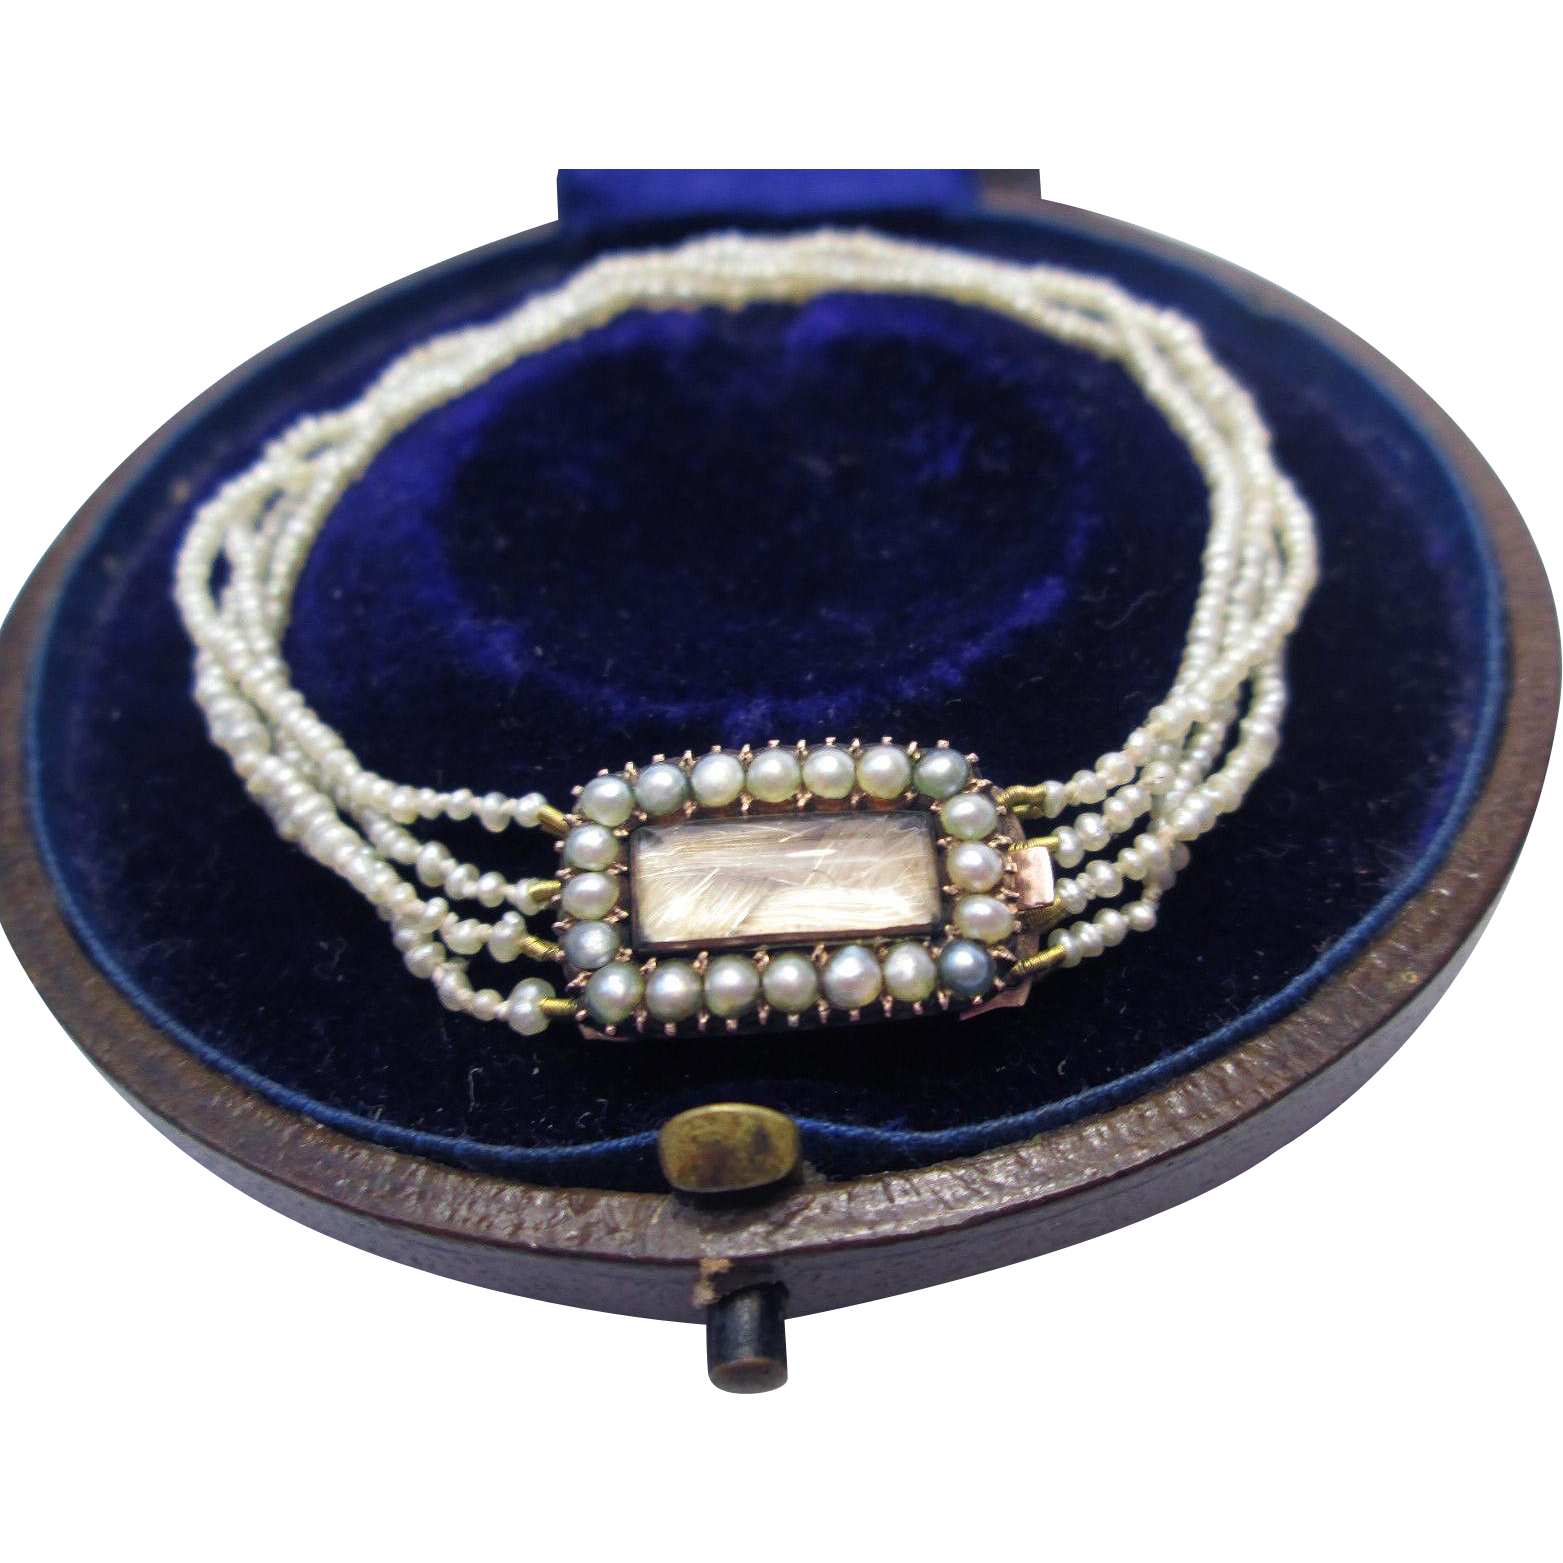 PRISTINE Regency-Era Natural Seed Pearl/Hair Token/9k Bracelet, Inscribed 1807, Boxed!